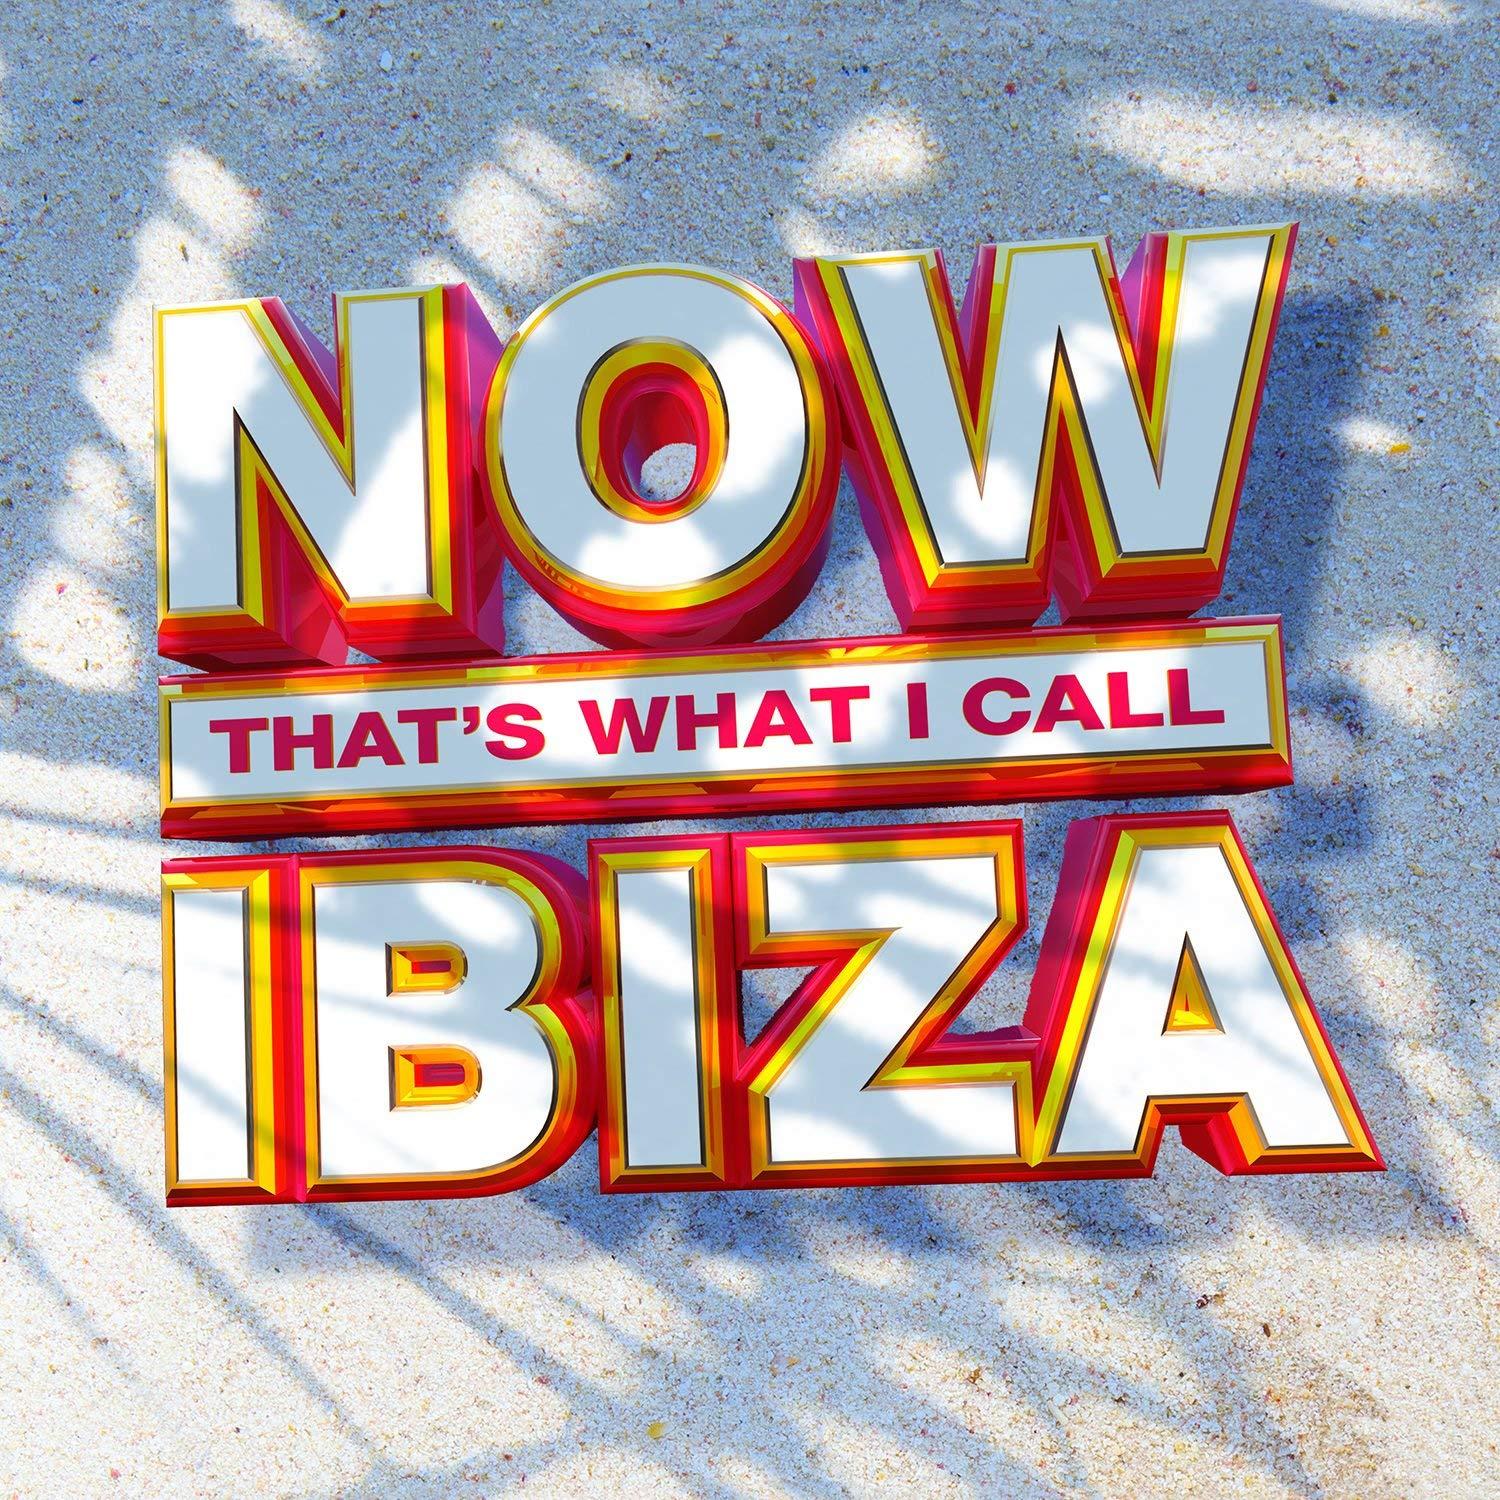 Better Now Mp3 Download 2018: NOW Thats What I Call Ibiza (2018) MP3